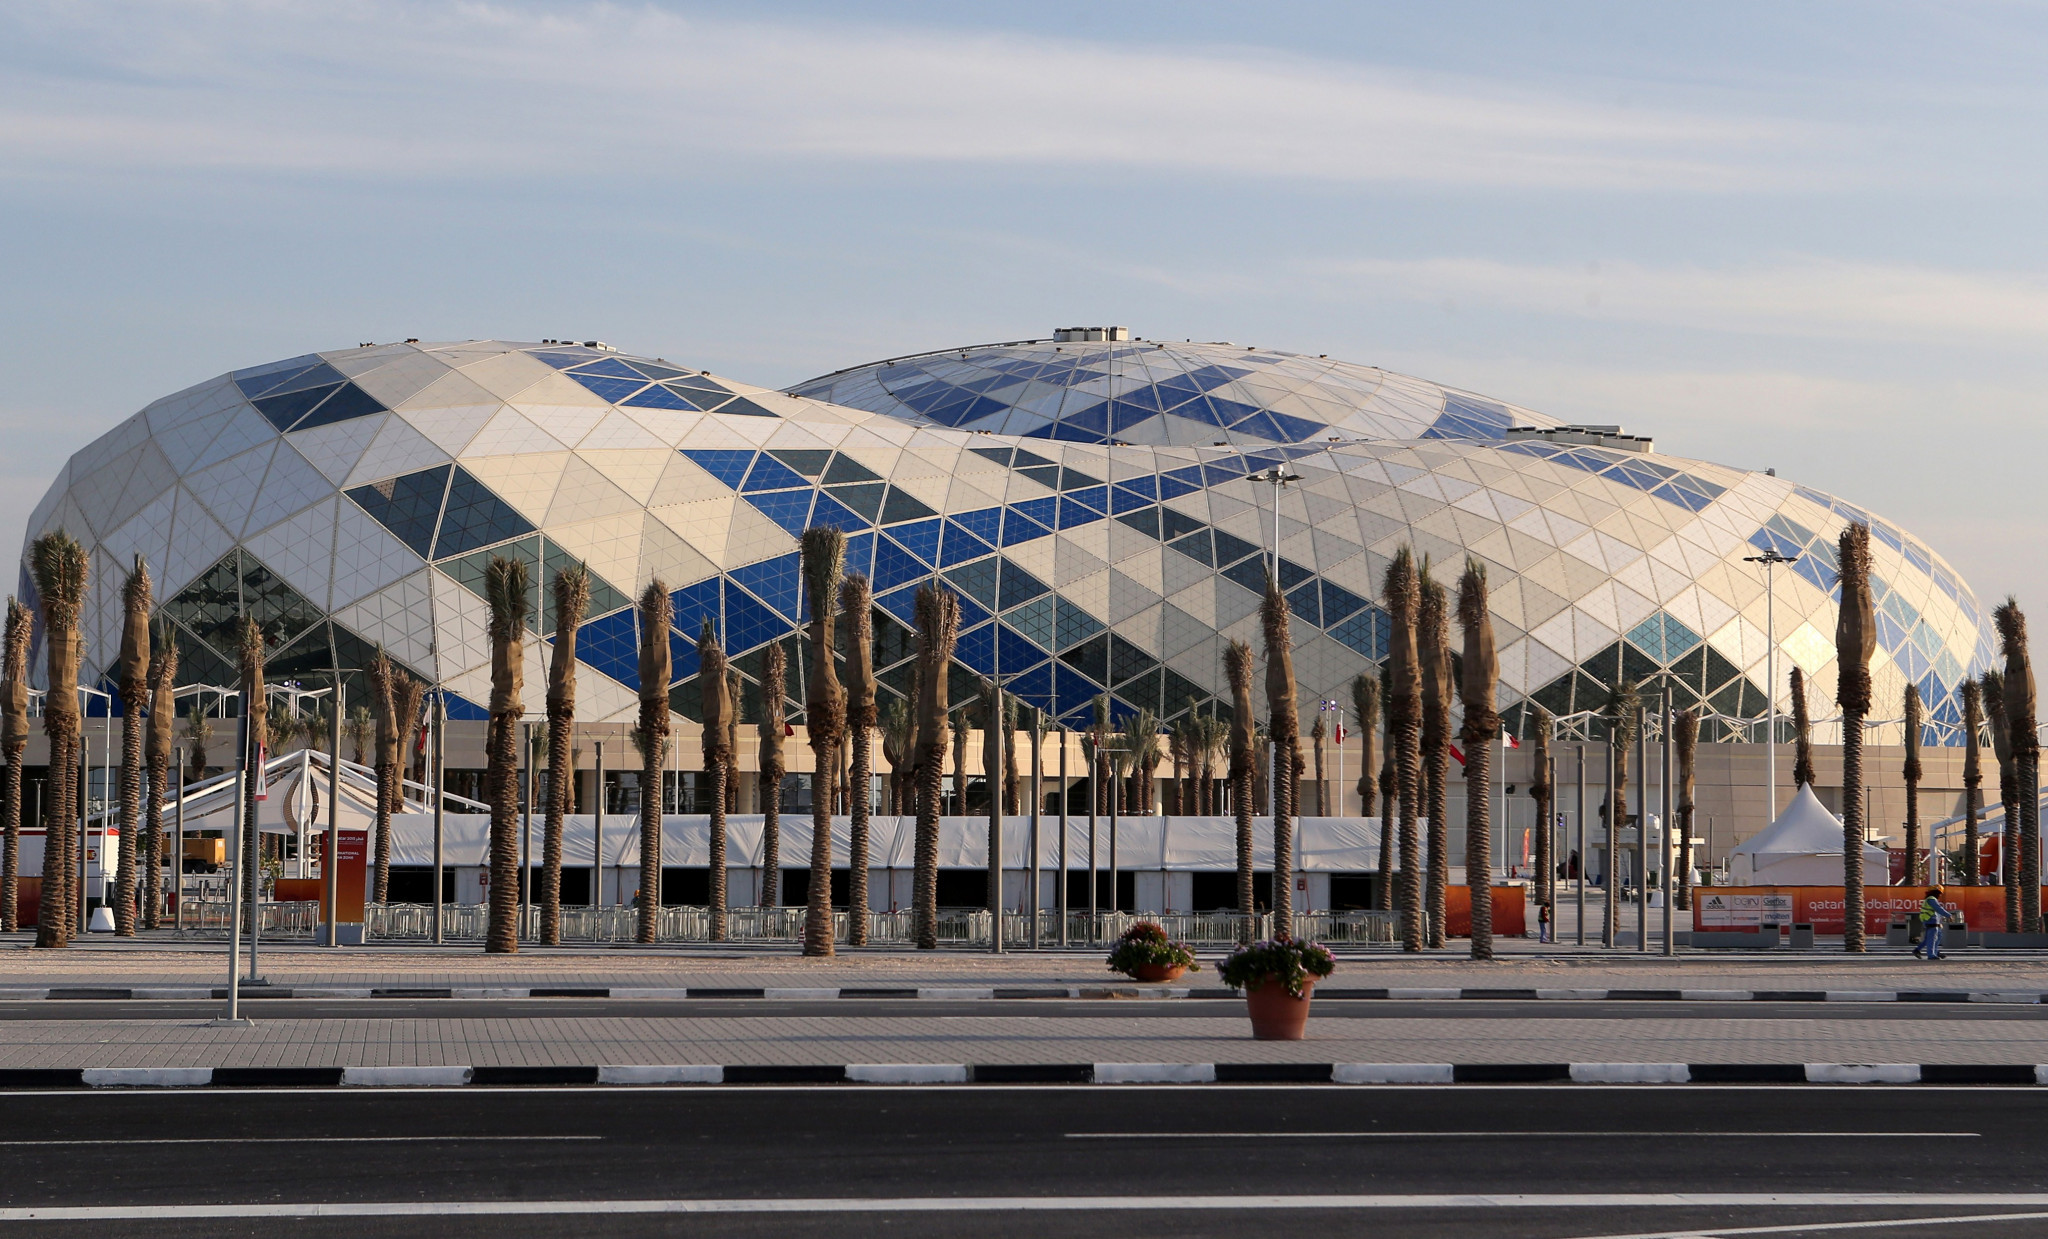 The Lusail Sports Arena cost approximately $318 million (£229 million/€270 million) to build ©Getty Images